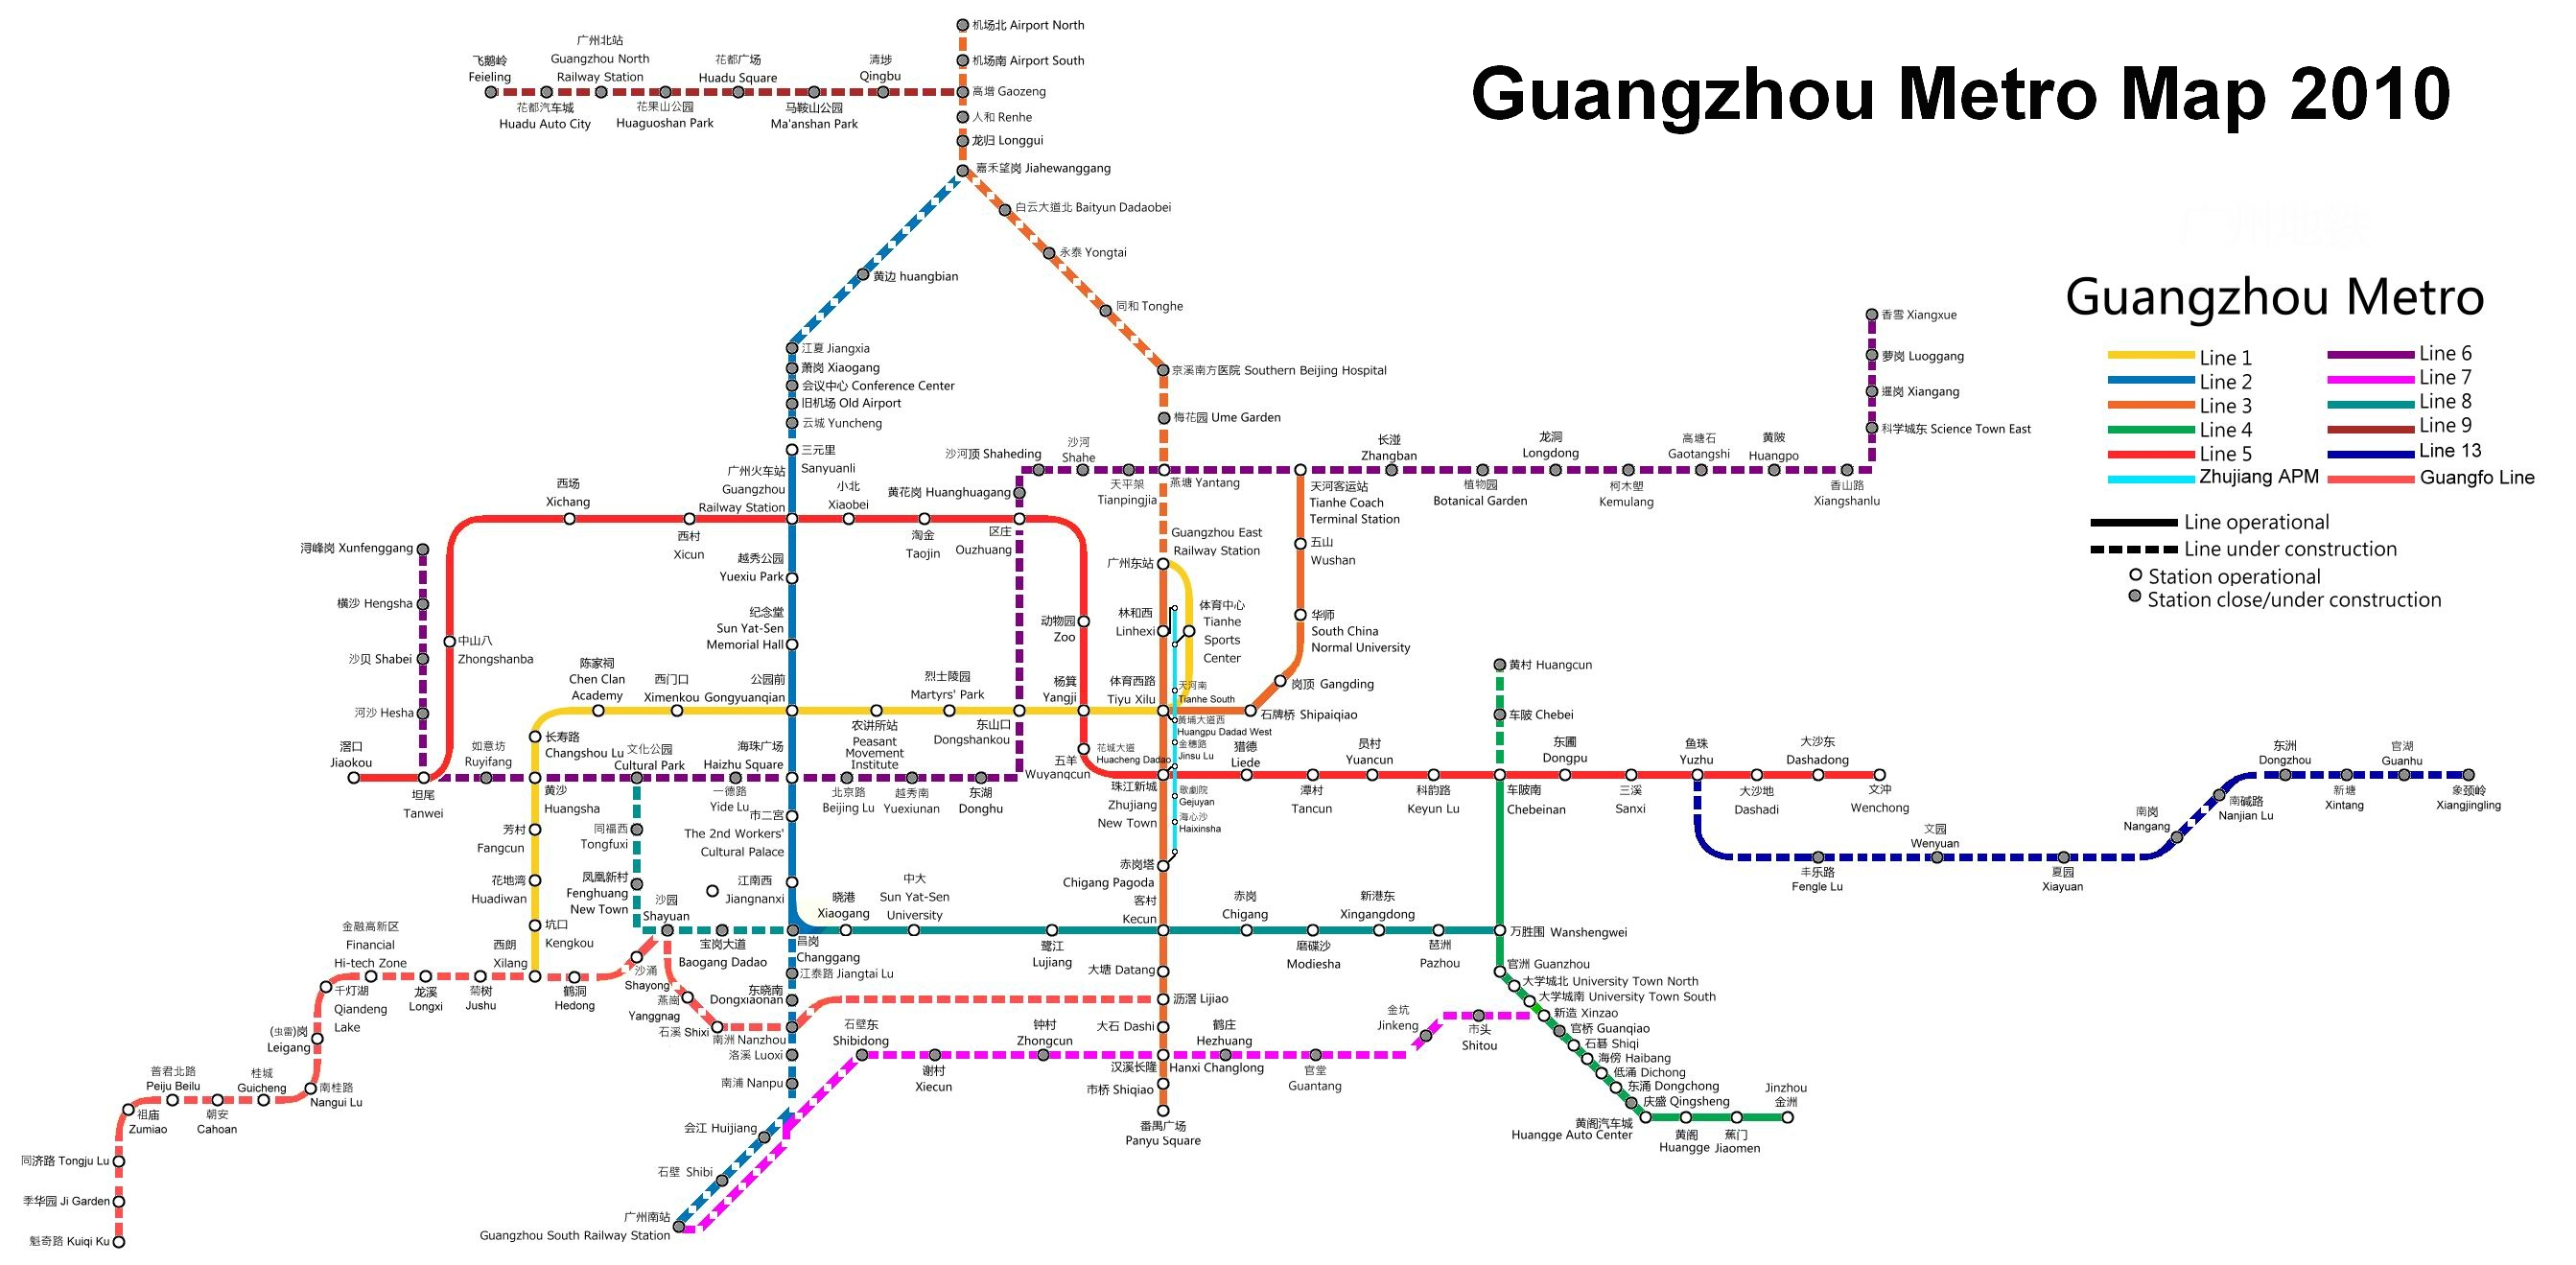 Guangzhou metro map 2010g 26861319 a pinterest guangzhou metro map 2010g 26861319 a pinterest guangzhou metro rail and subway map sciox Choice Image